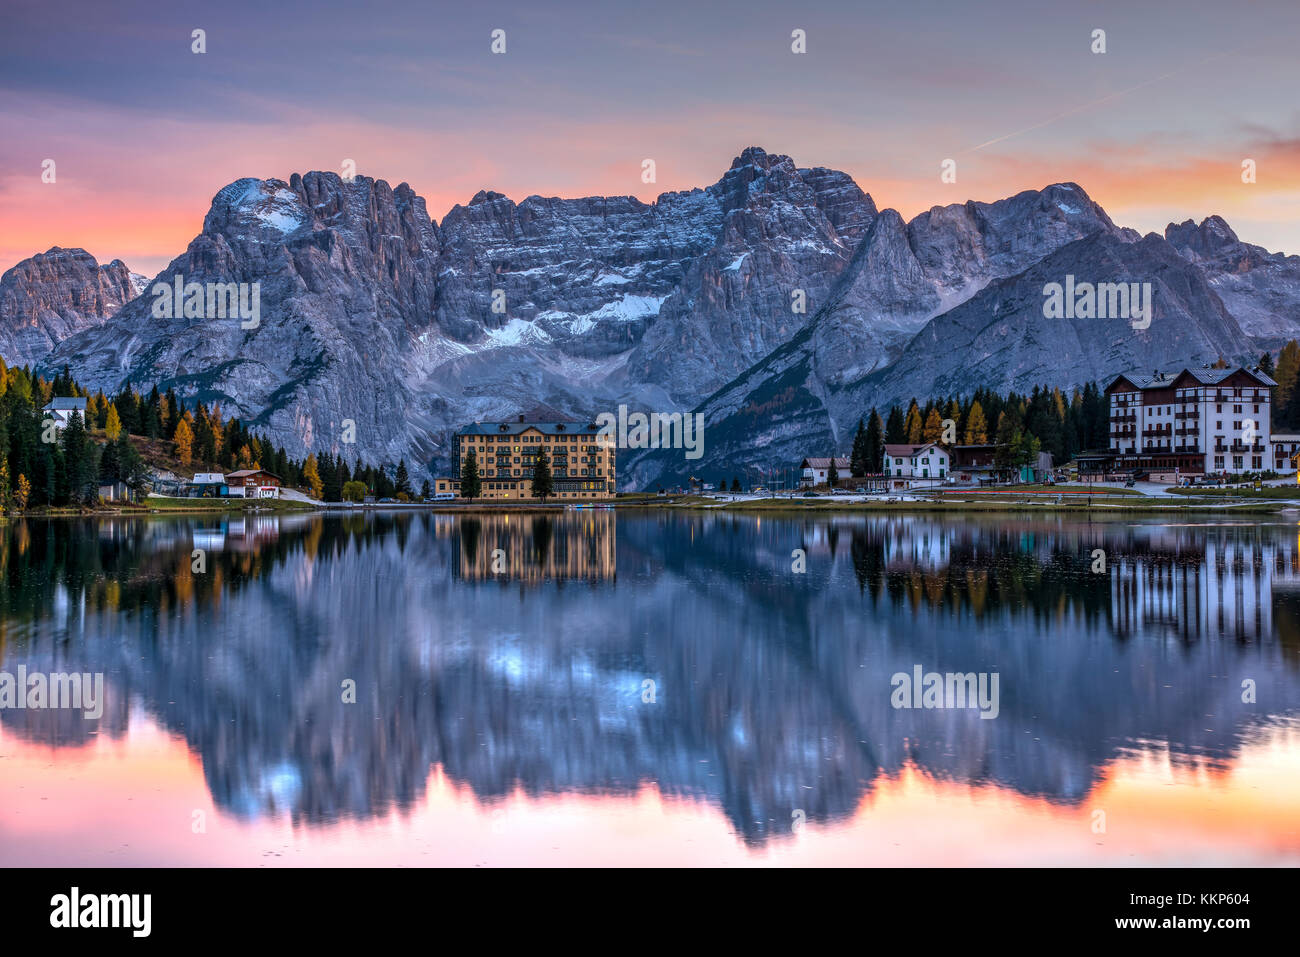 Sunset view over Lake Misurima with Sorapis mountain group in the background, Misurina, Veneto, Italy - Stock Image